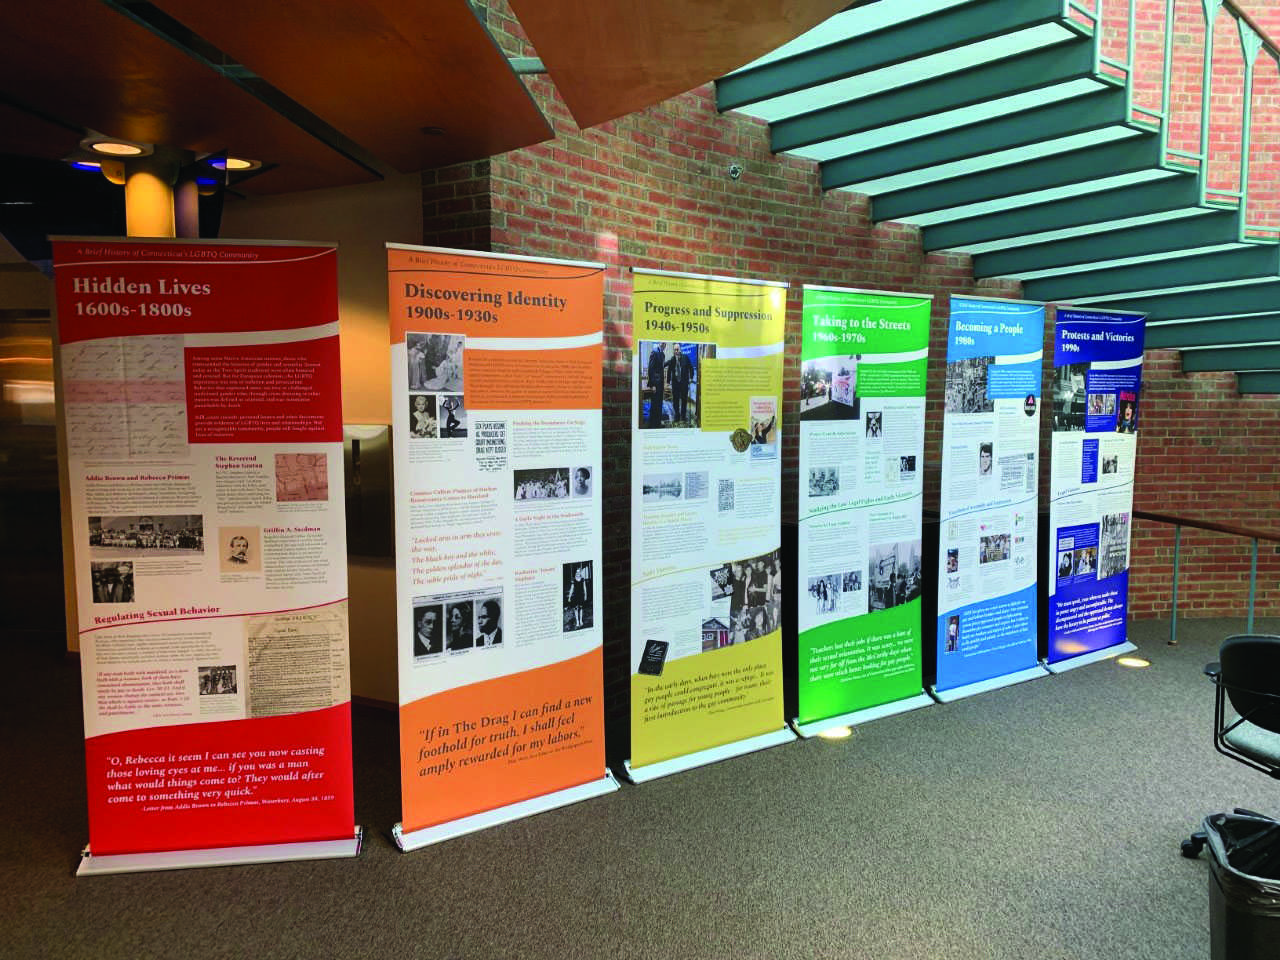 LGBTQ history exhibits